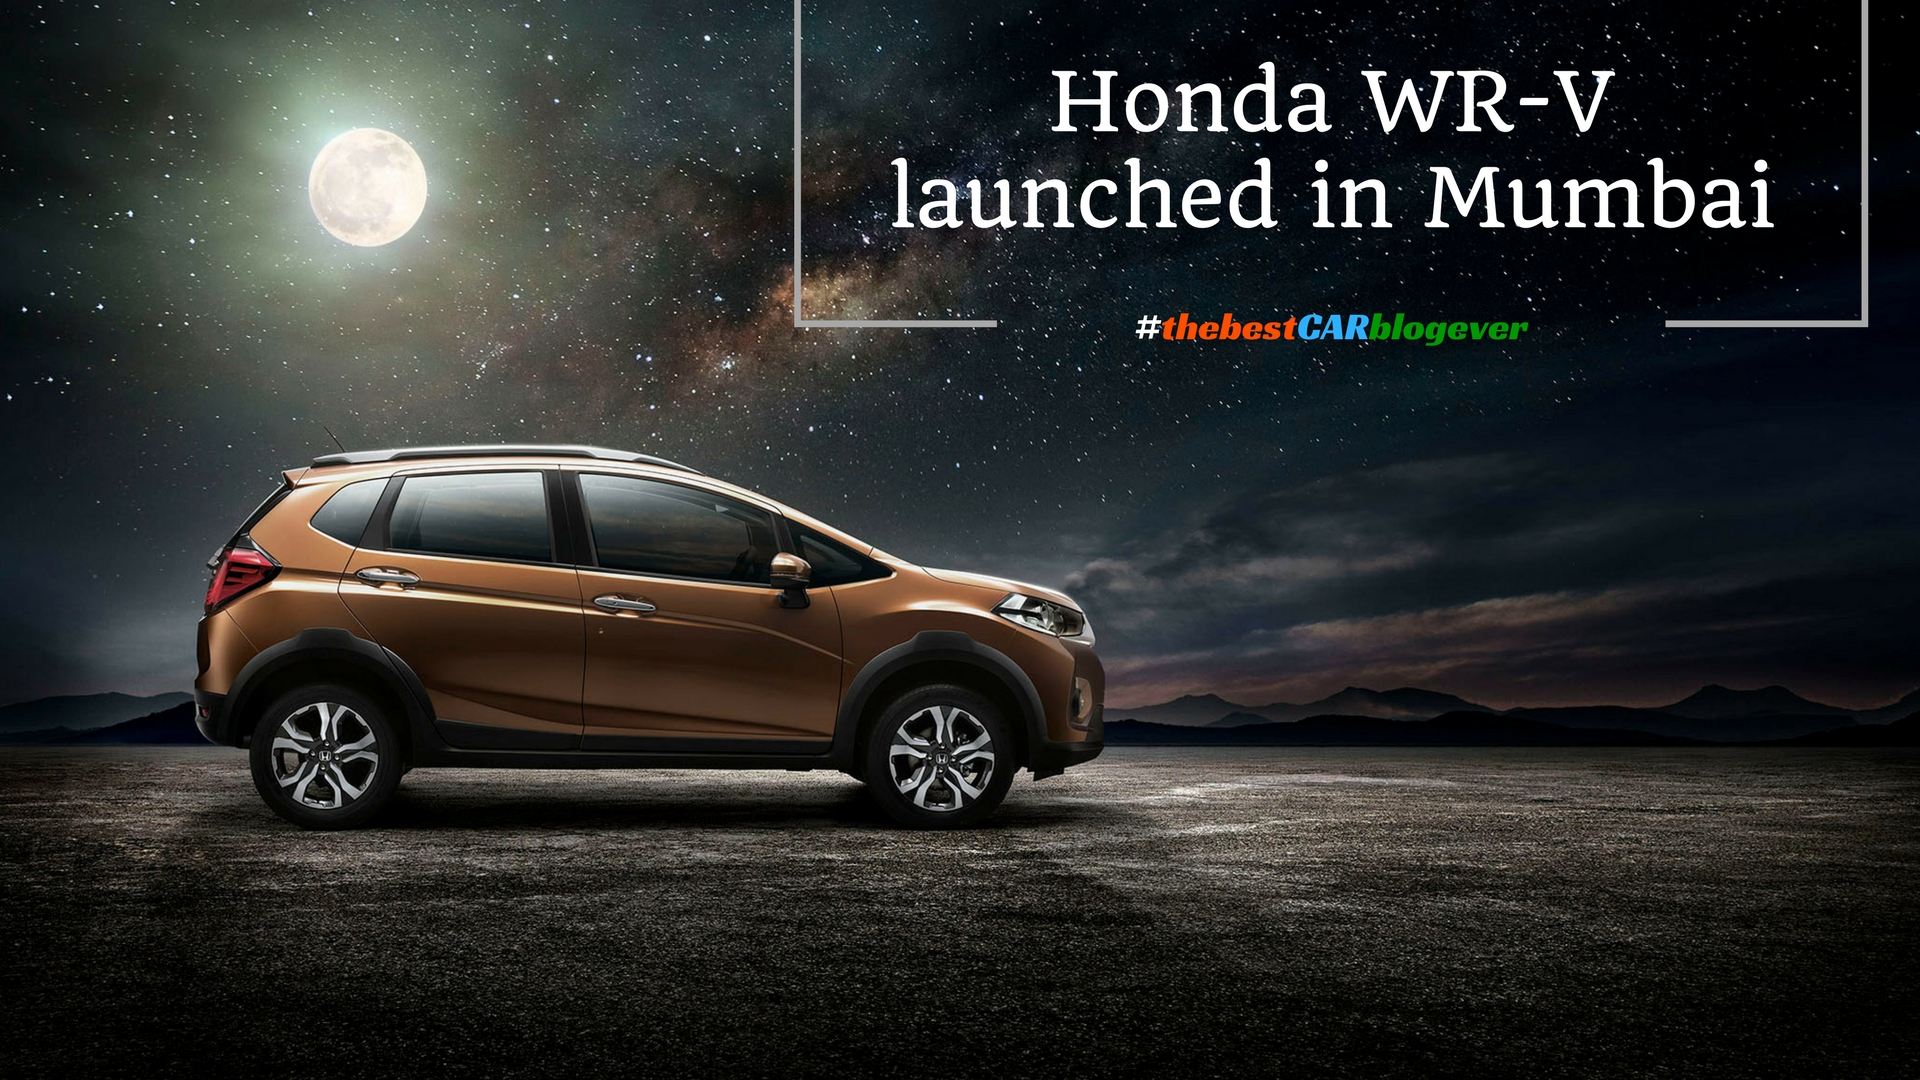 Honda WR-V launched in Mumbai